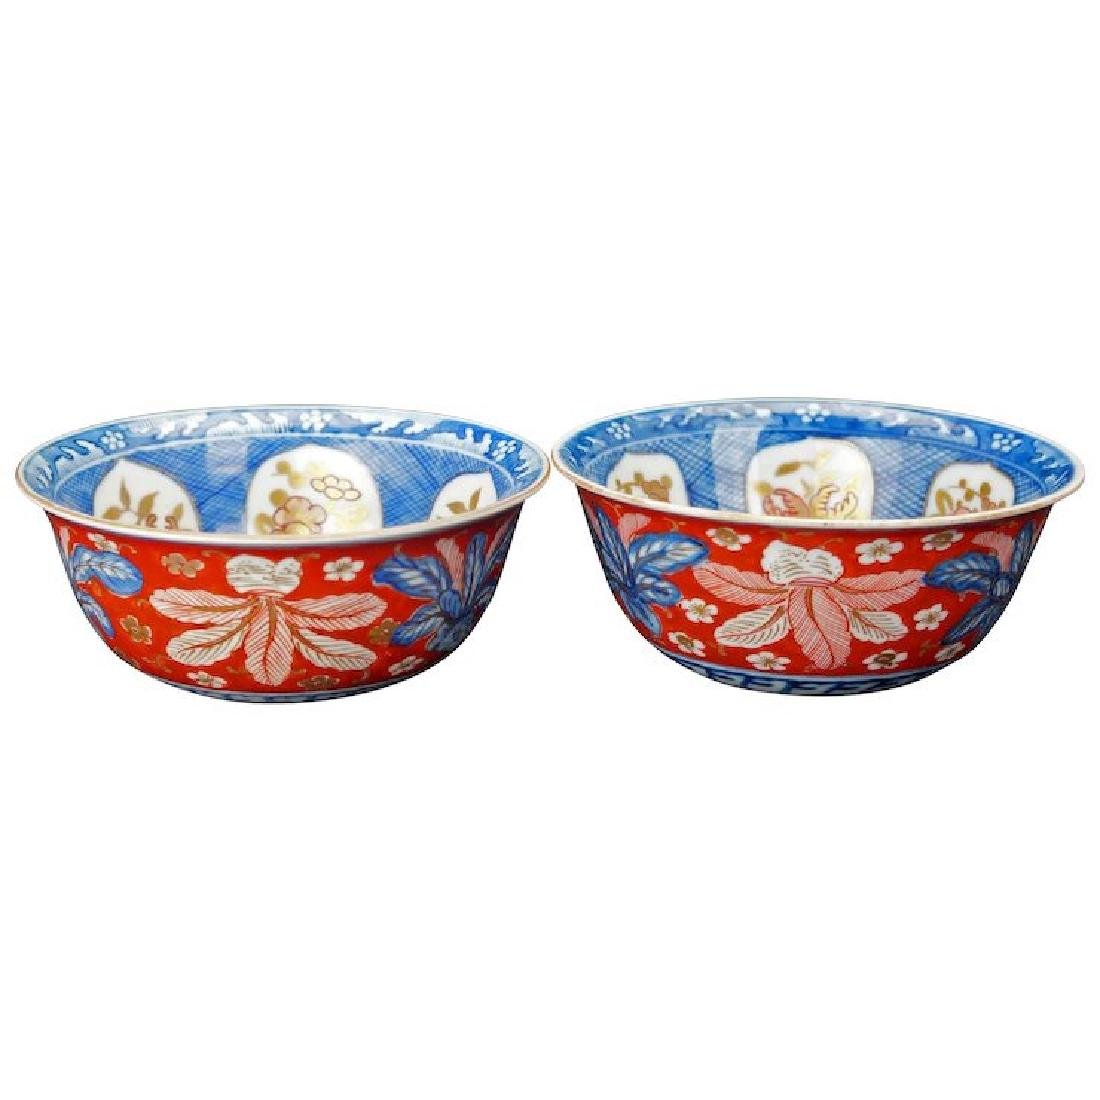 Pair of Japanese porcelain colored Imari bowls 19th